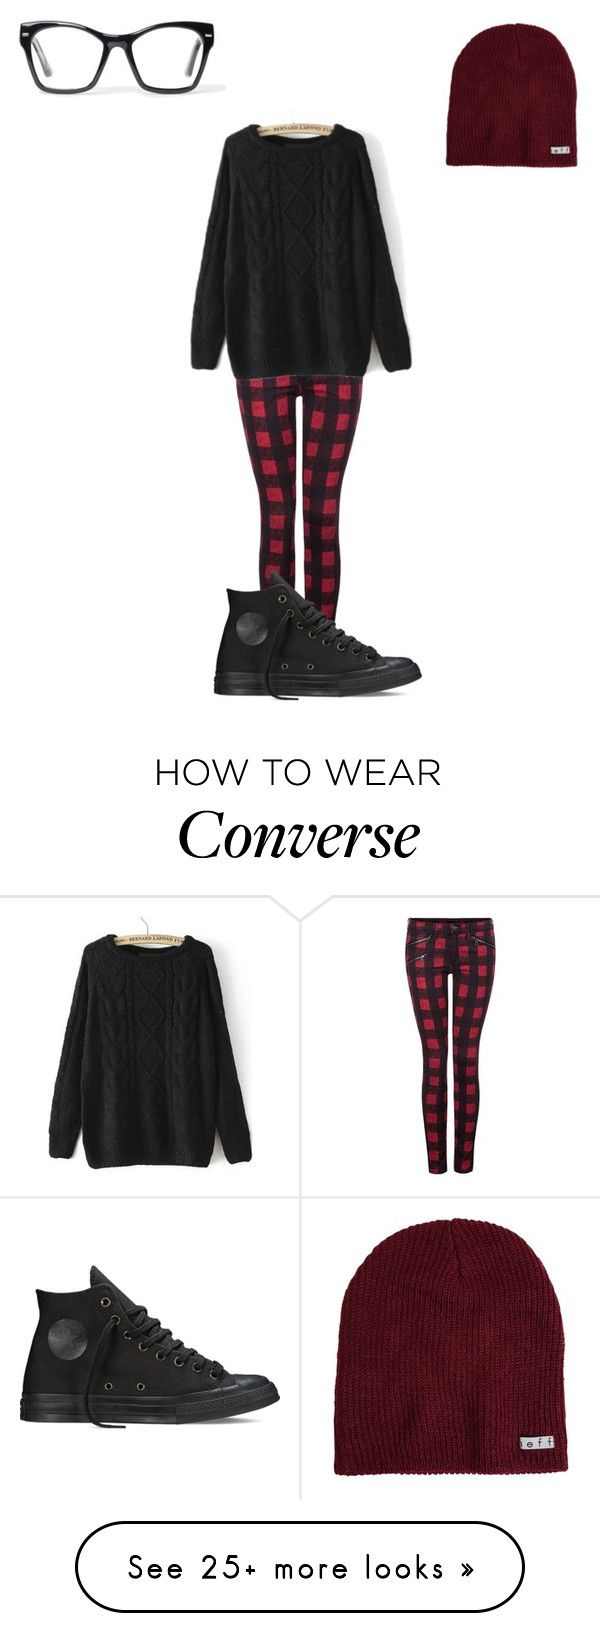 """Untitled #137"" by kyleruniverse on Polyvore featuring Dex, Neff, Converse, Spitfire, women's clothing, women's fashion, women, female, woman and misses"